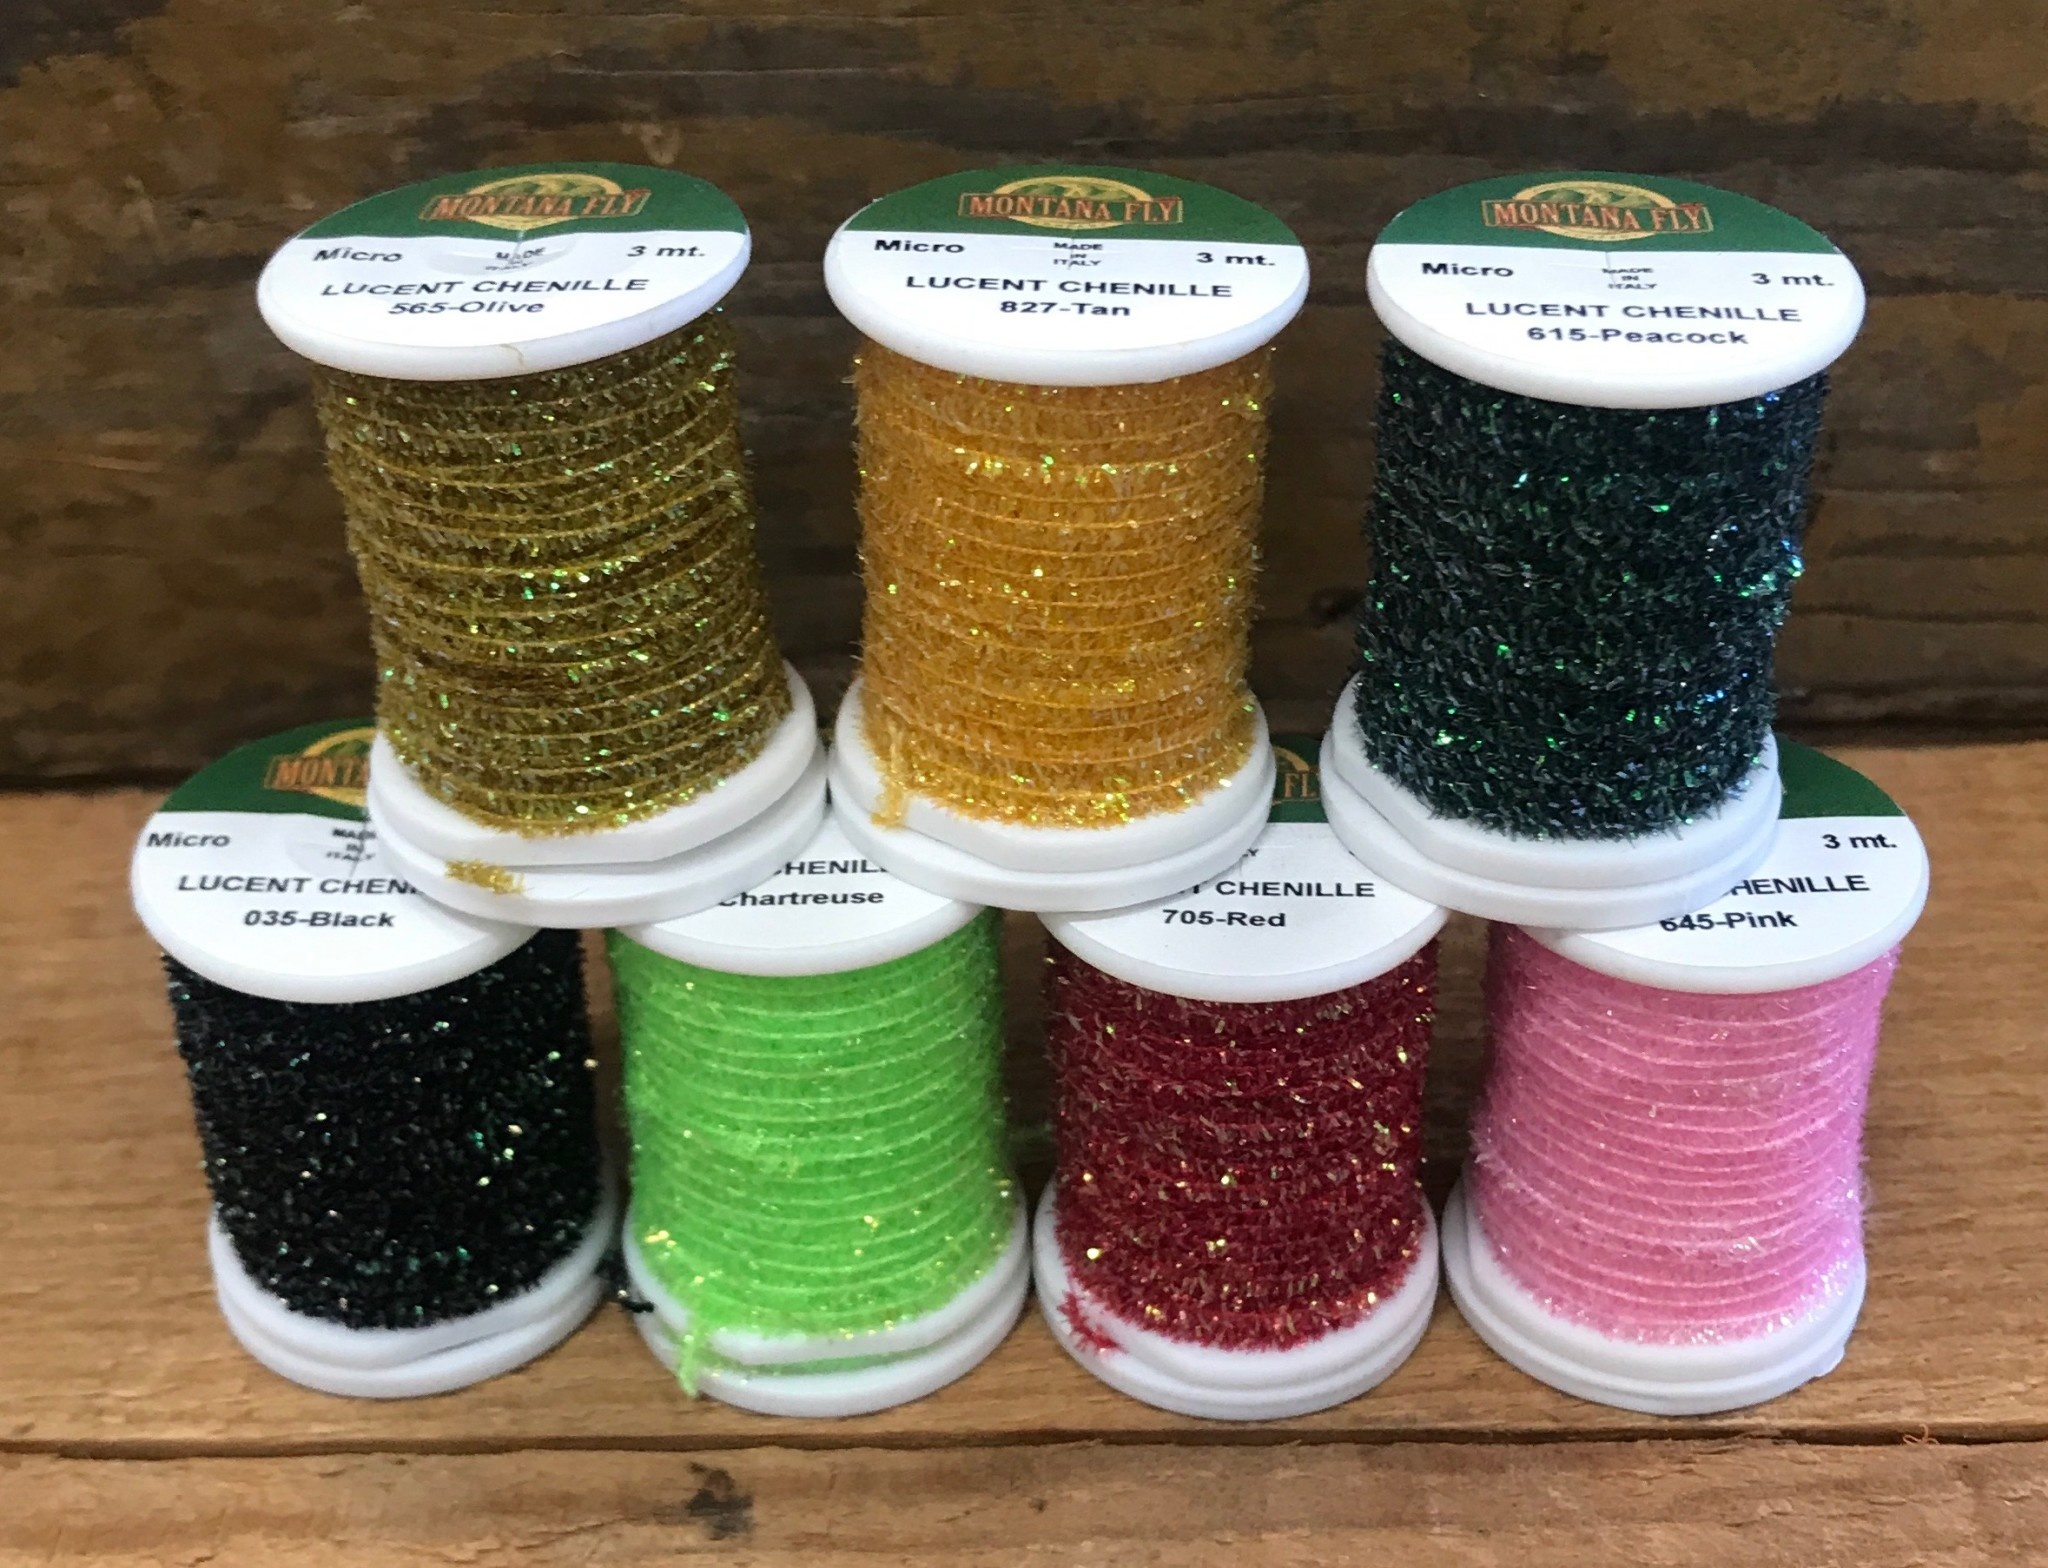 MFC MFC Micro Lucent Chenille Spooled